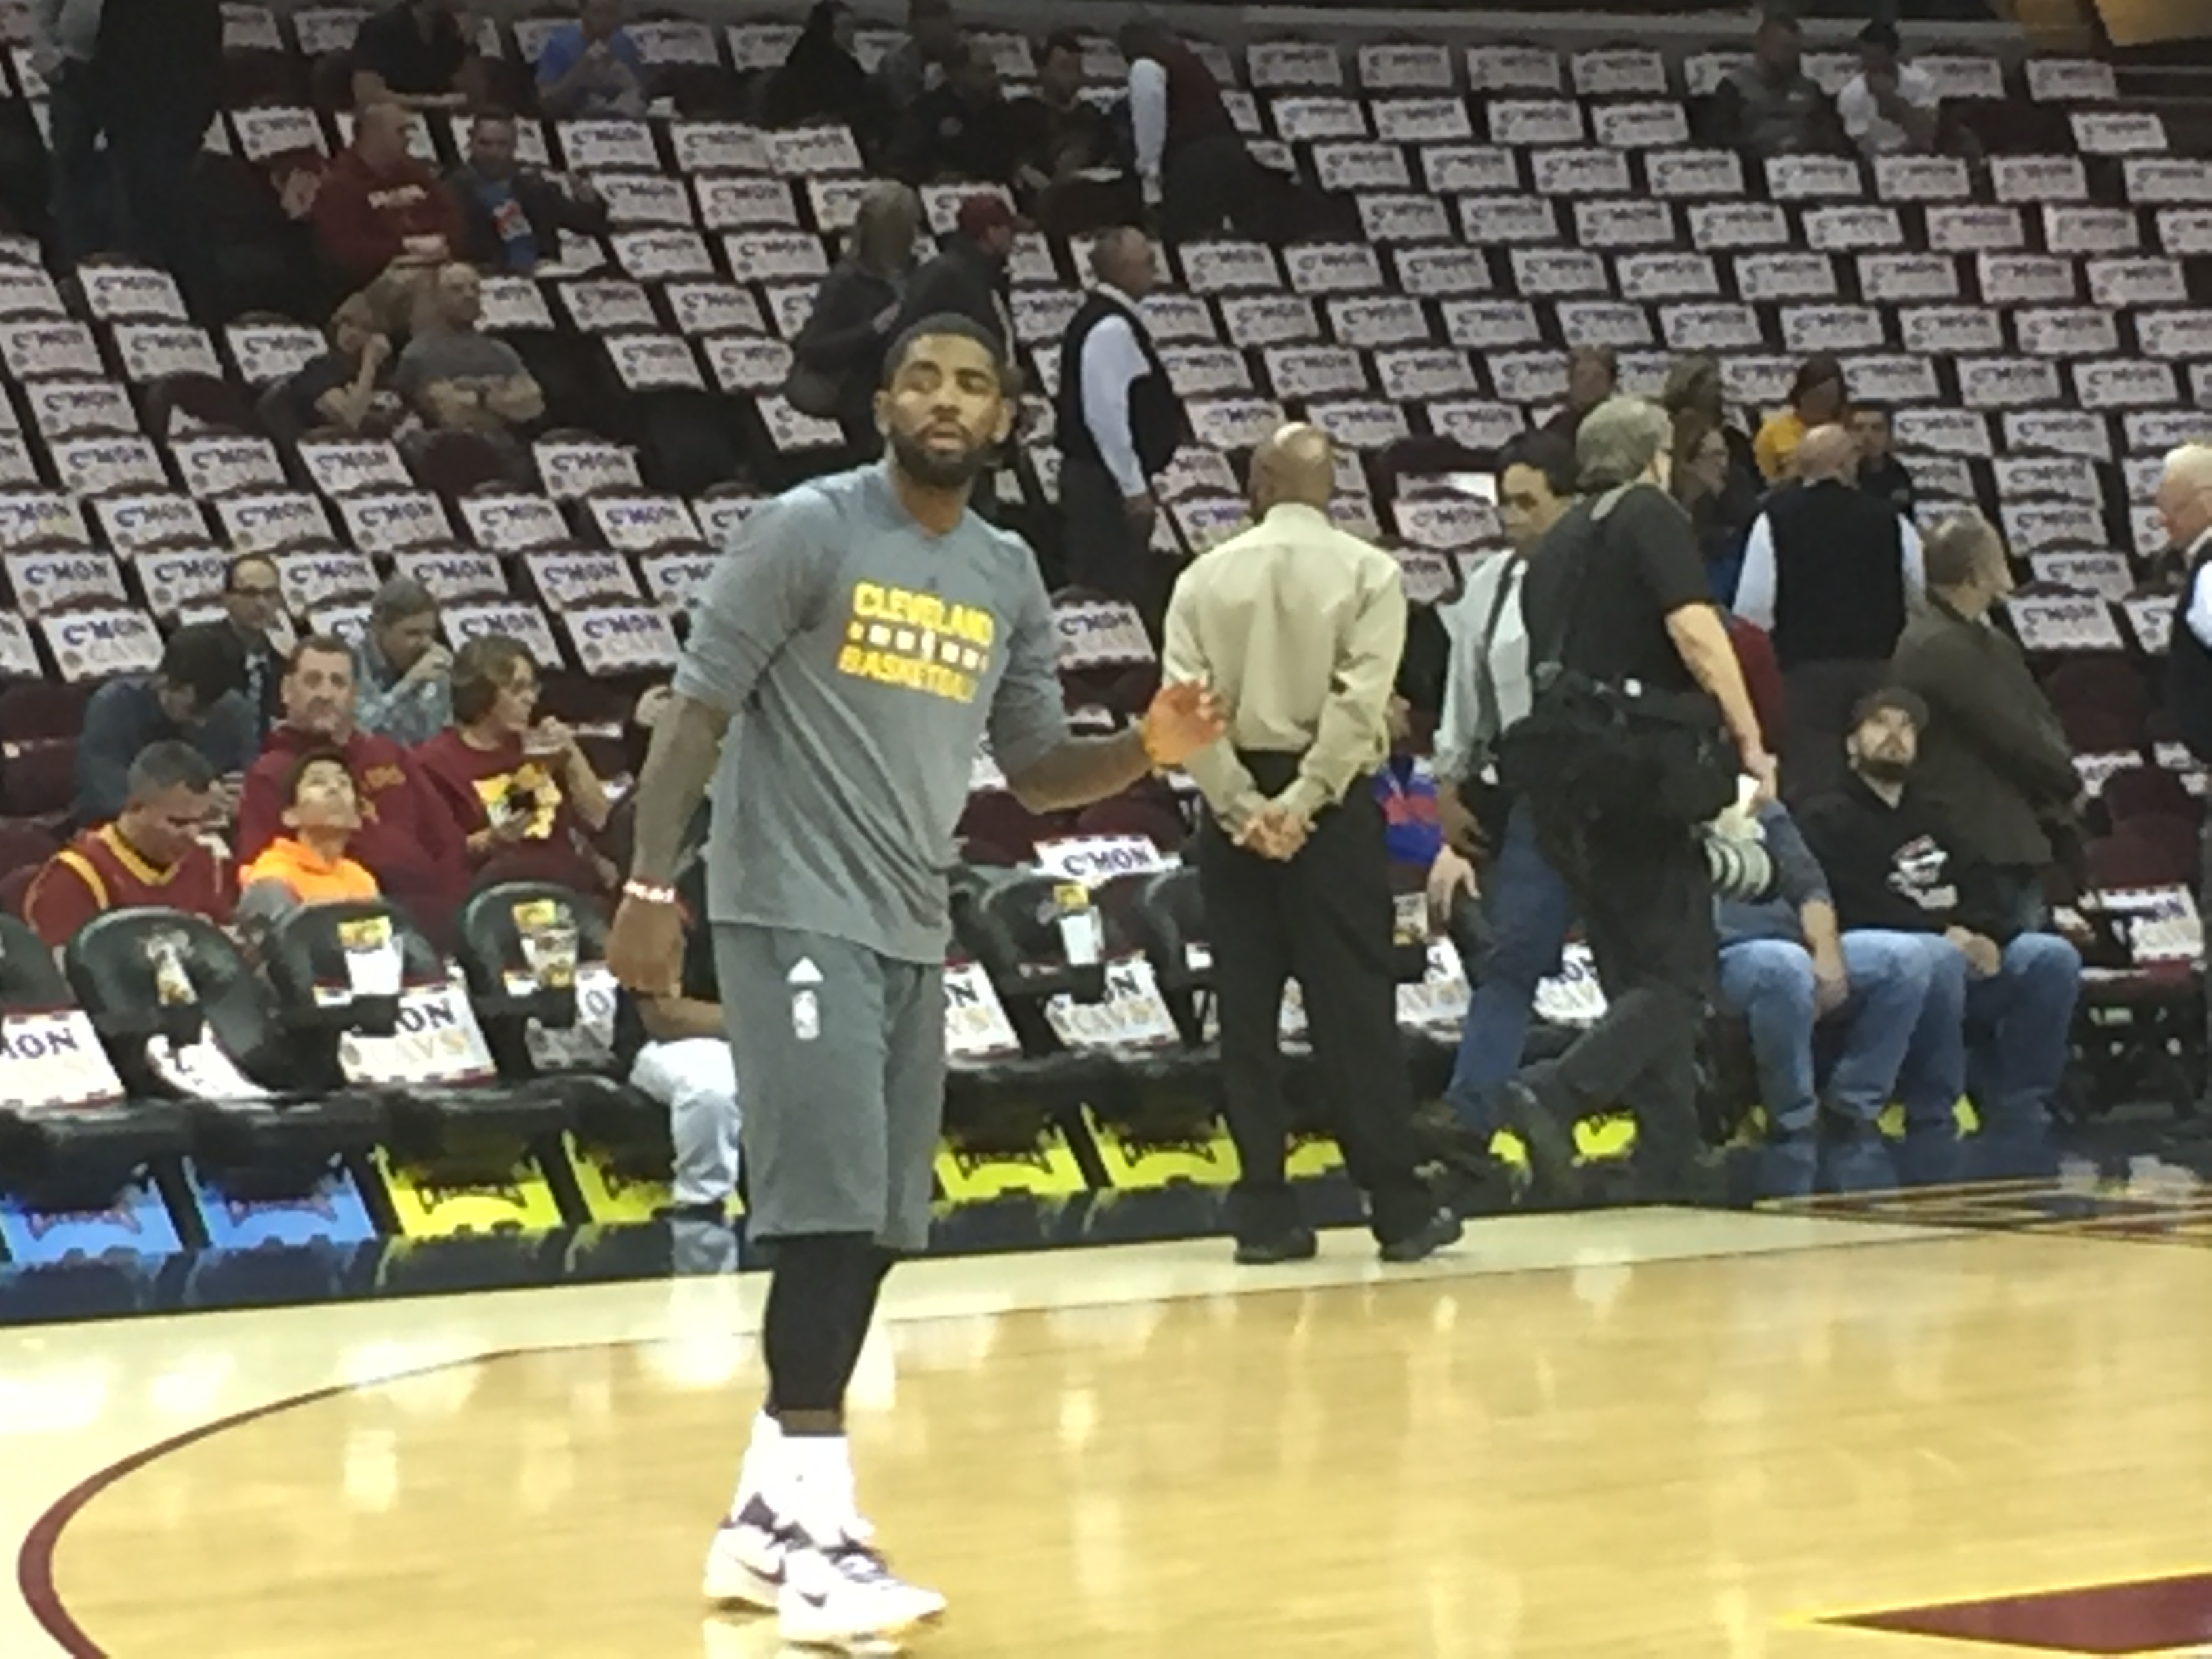 bb54b0da7190 Cavaliers guard Kyrie Irving is working to get back on the court to help  his team